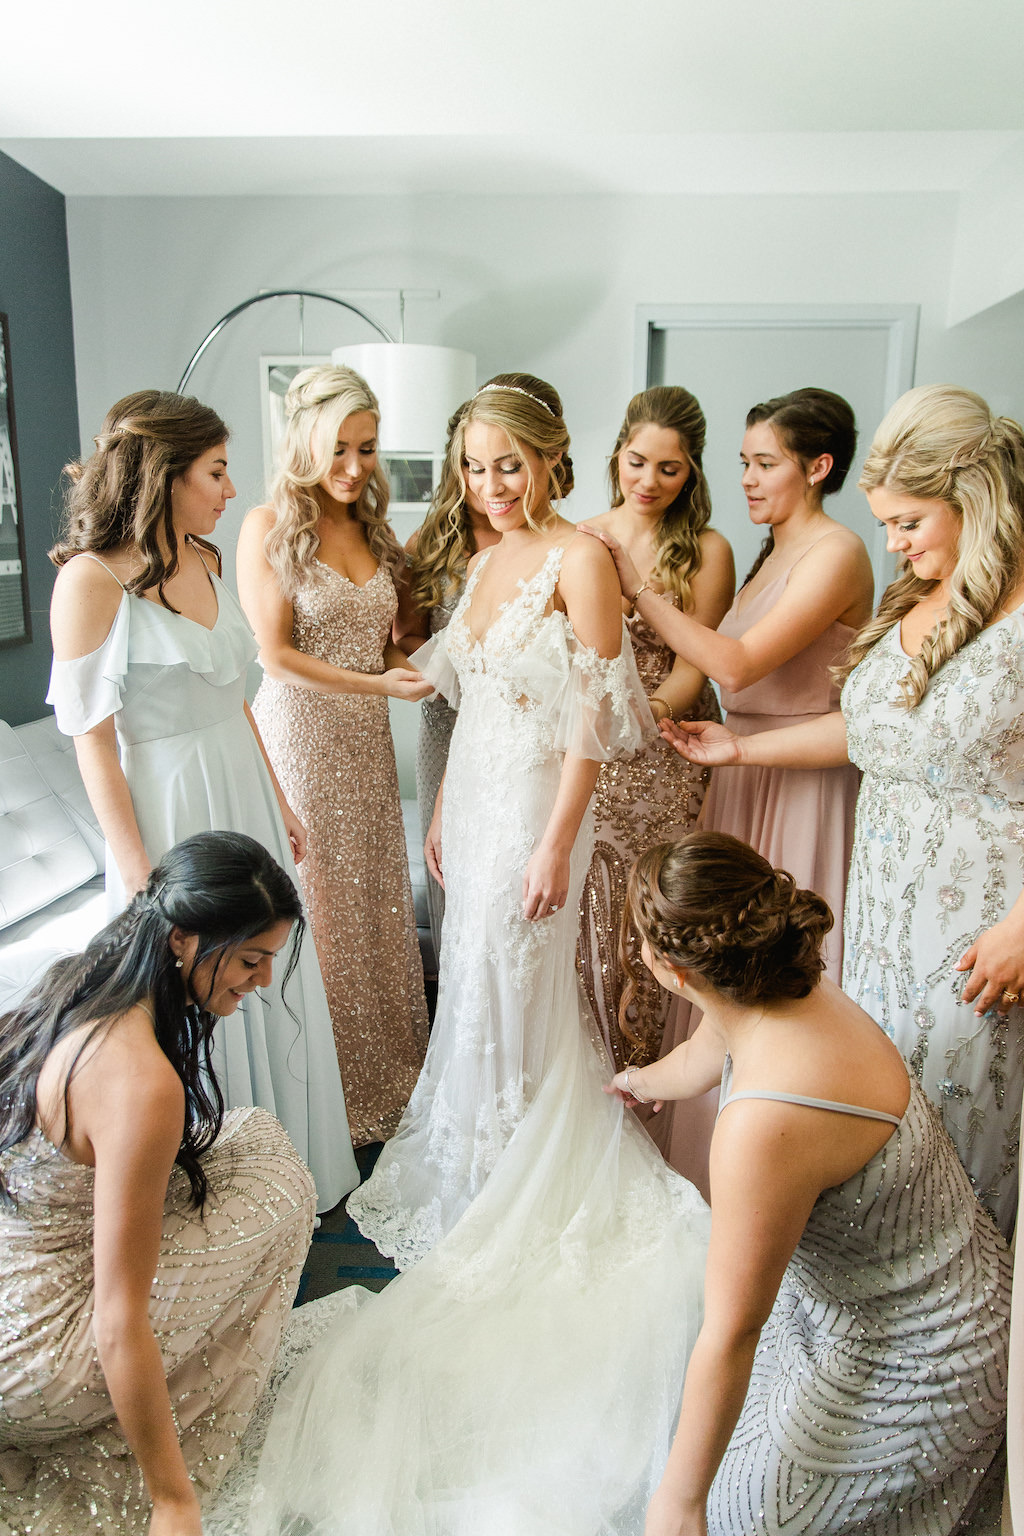 Florida Bride Getting Ready Wedding Portrait with Bridesmaids in Mismatched Rose Gold, Silver Dresses, Bride in Deep V Neckline Lace, Off the Shoulder Illusion Sleeves